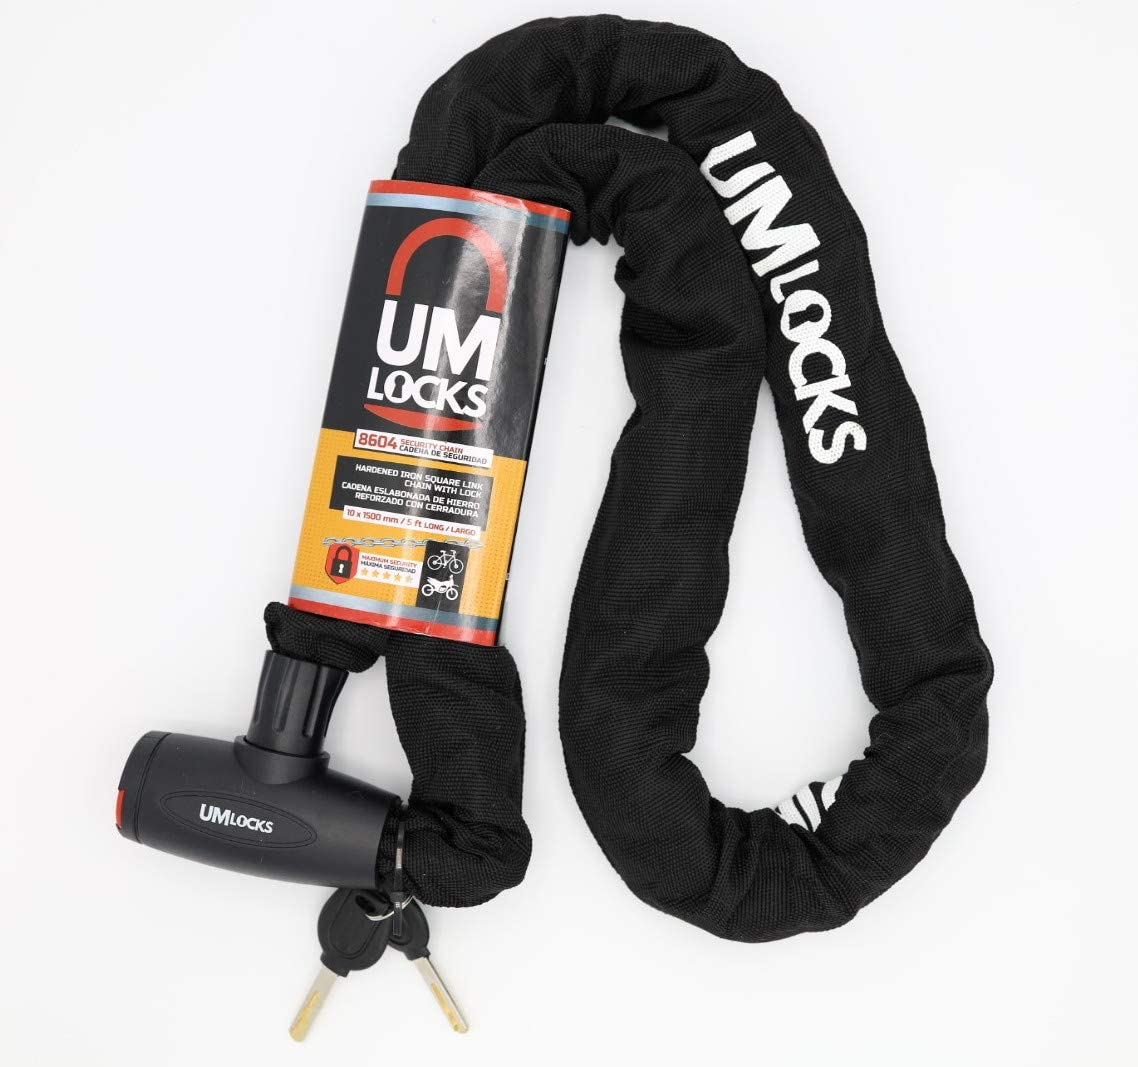 Great for Bicycle Sports Equipments 5 Ft Extra Long Chain Lock 10mm Heavy Duty Anti-Theft Bicycle Lock Bike Chain Lock with 2 Keys UM Bike Lock Motobike Gate